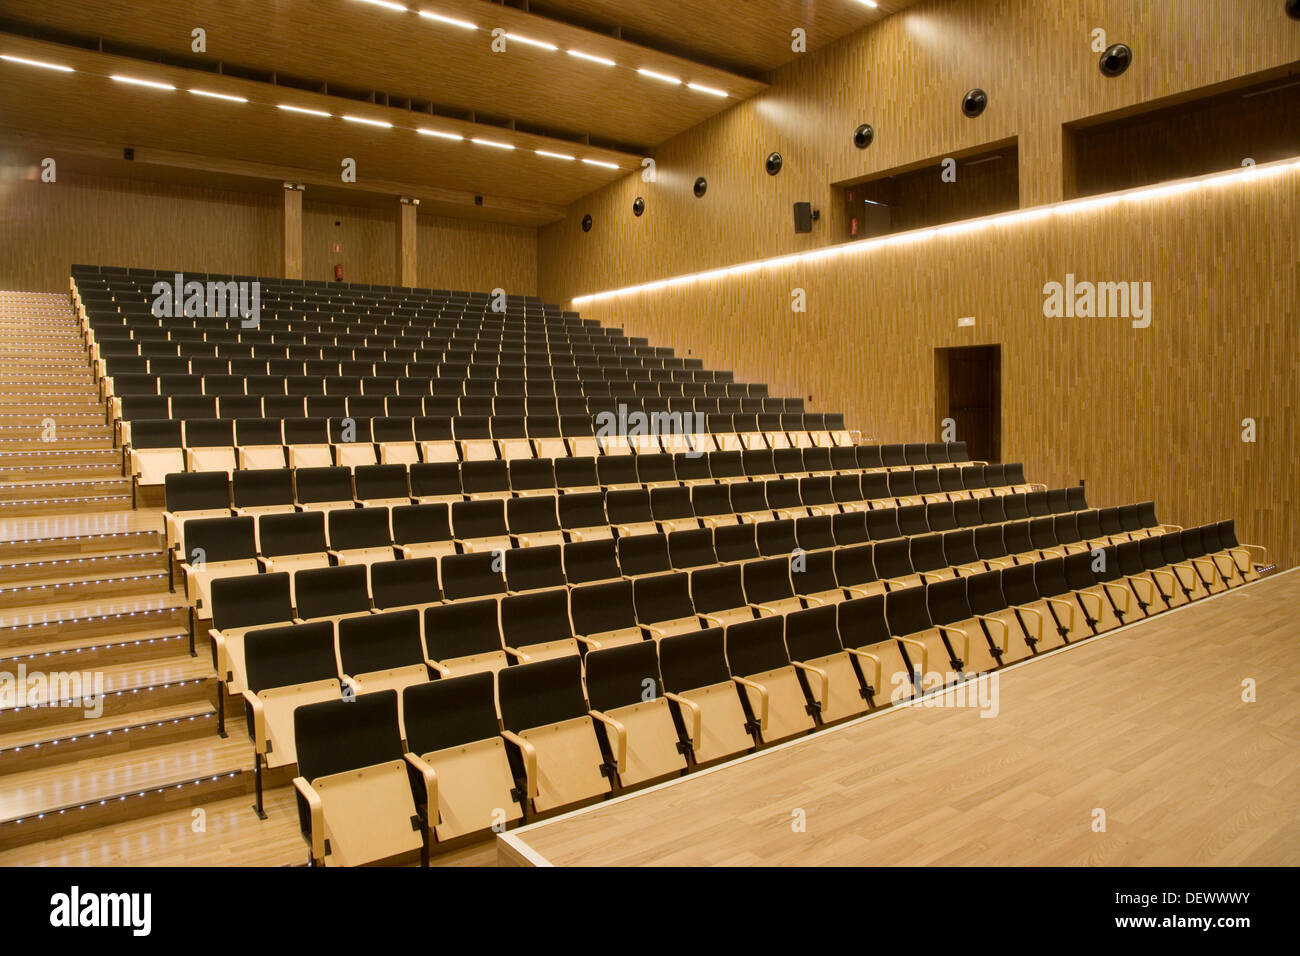 Auditorium of Juan Crisostomo de Arriaga music conservatory, Sarriko, Bilbao. Biscay, Basque Country, Spain Stock Photo